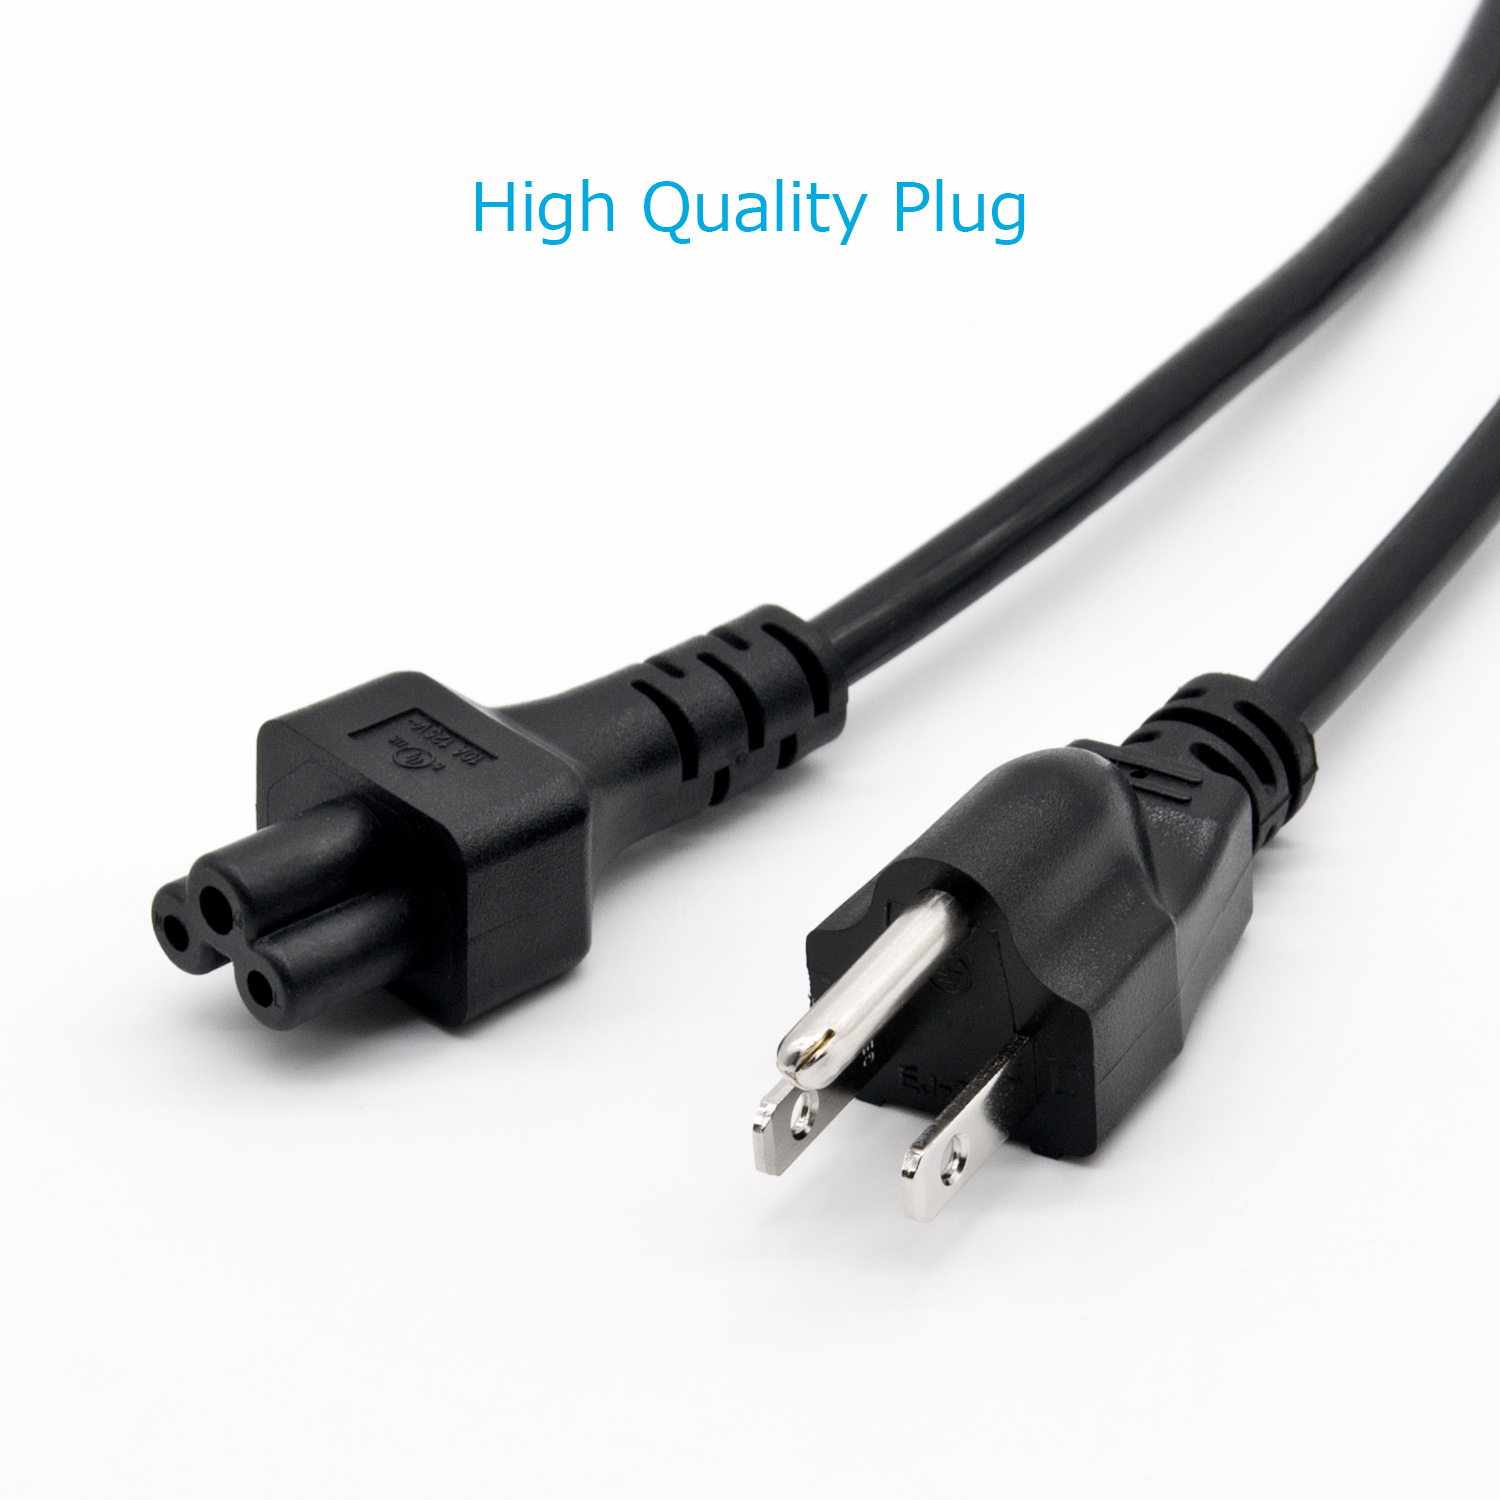 3 Prong AC Power Kabel, UNS Zertifiziert 3 meter Kurzen Power Kabel für Dell laptops power adapter